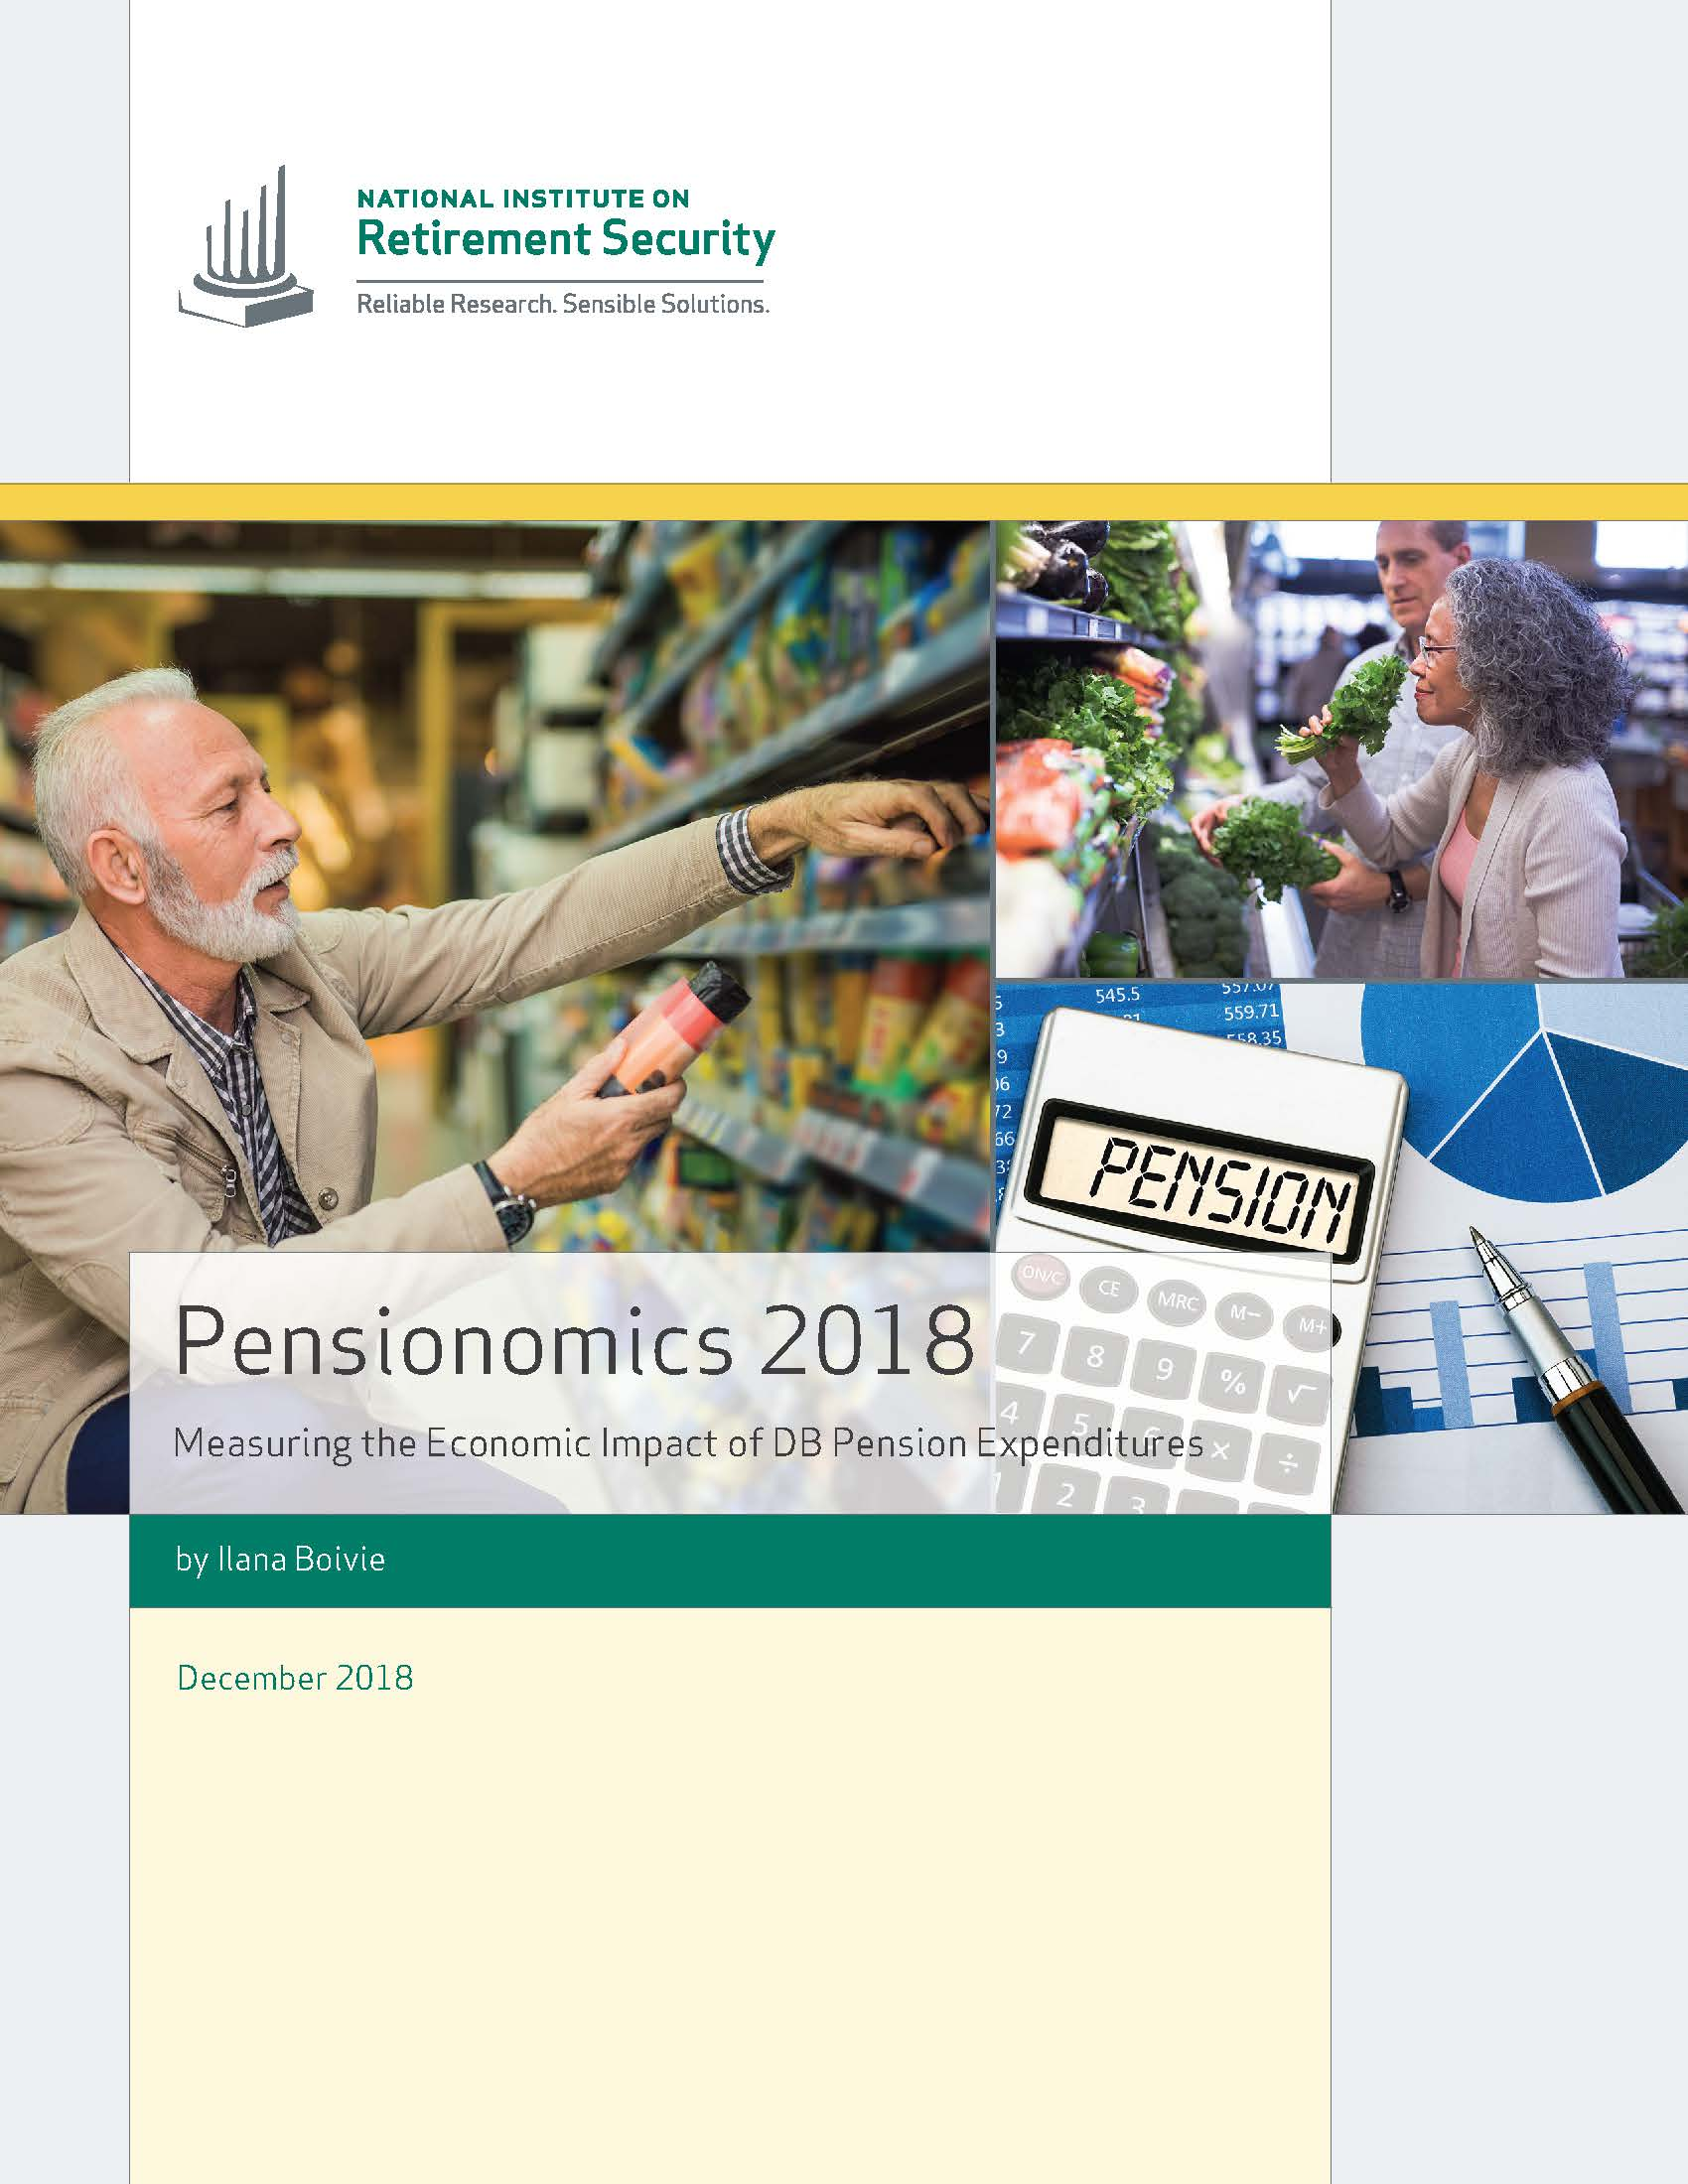 Cover of 2018 Pensionomics